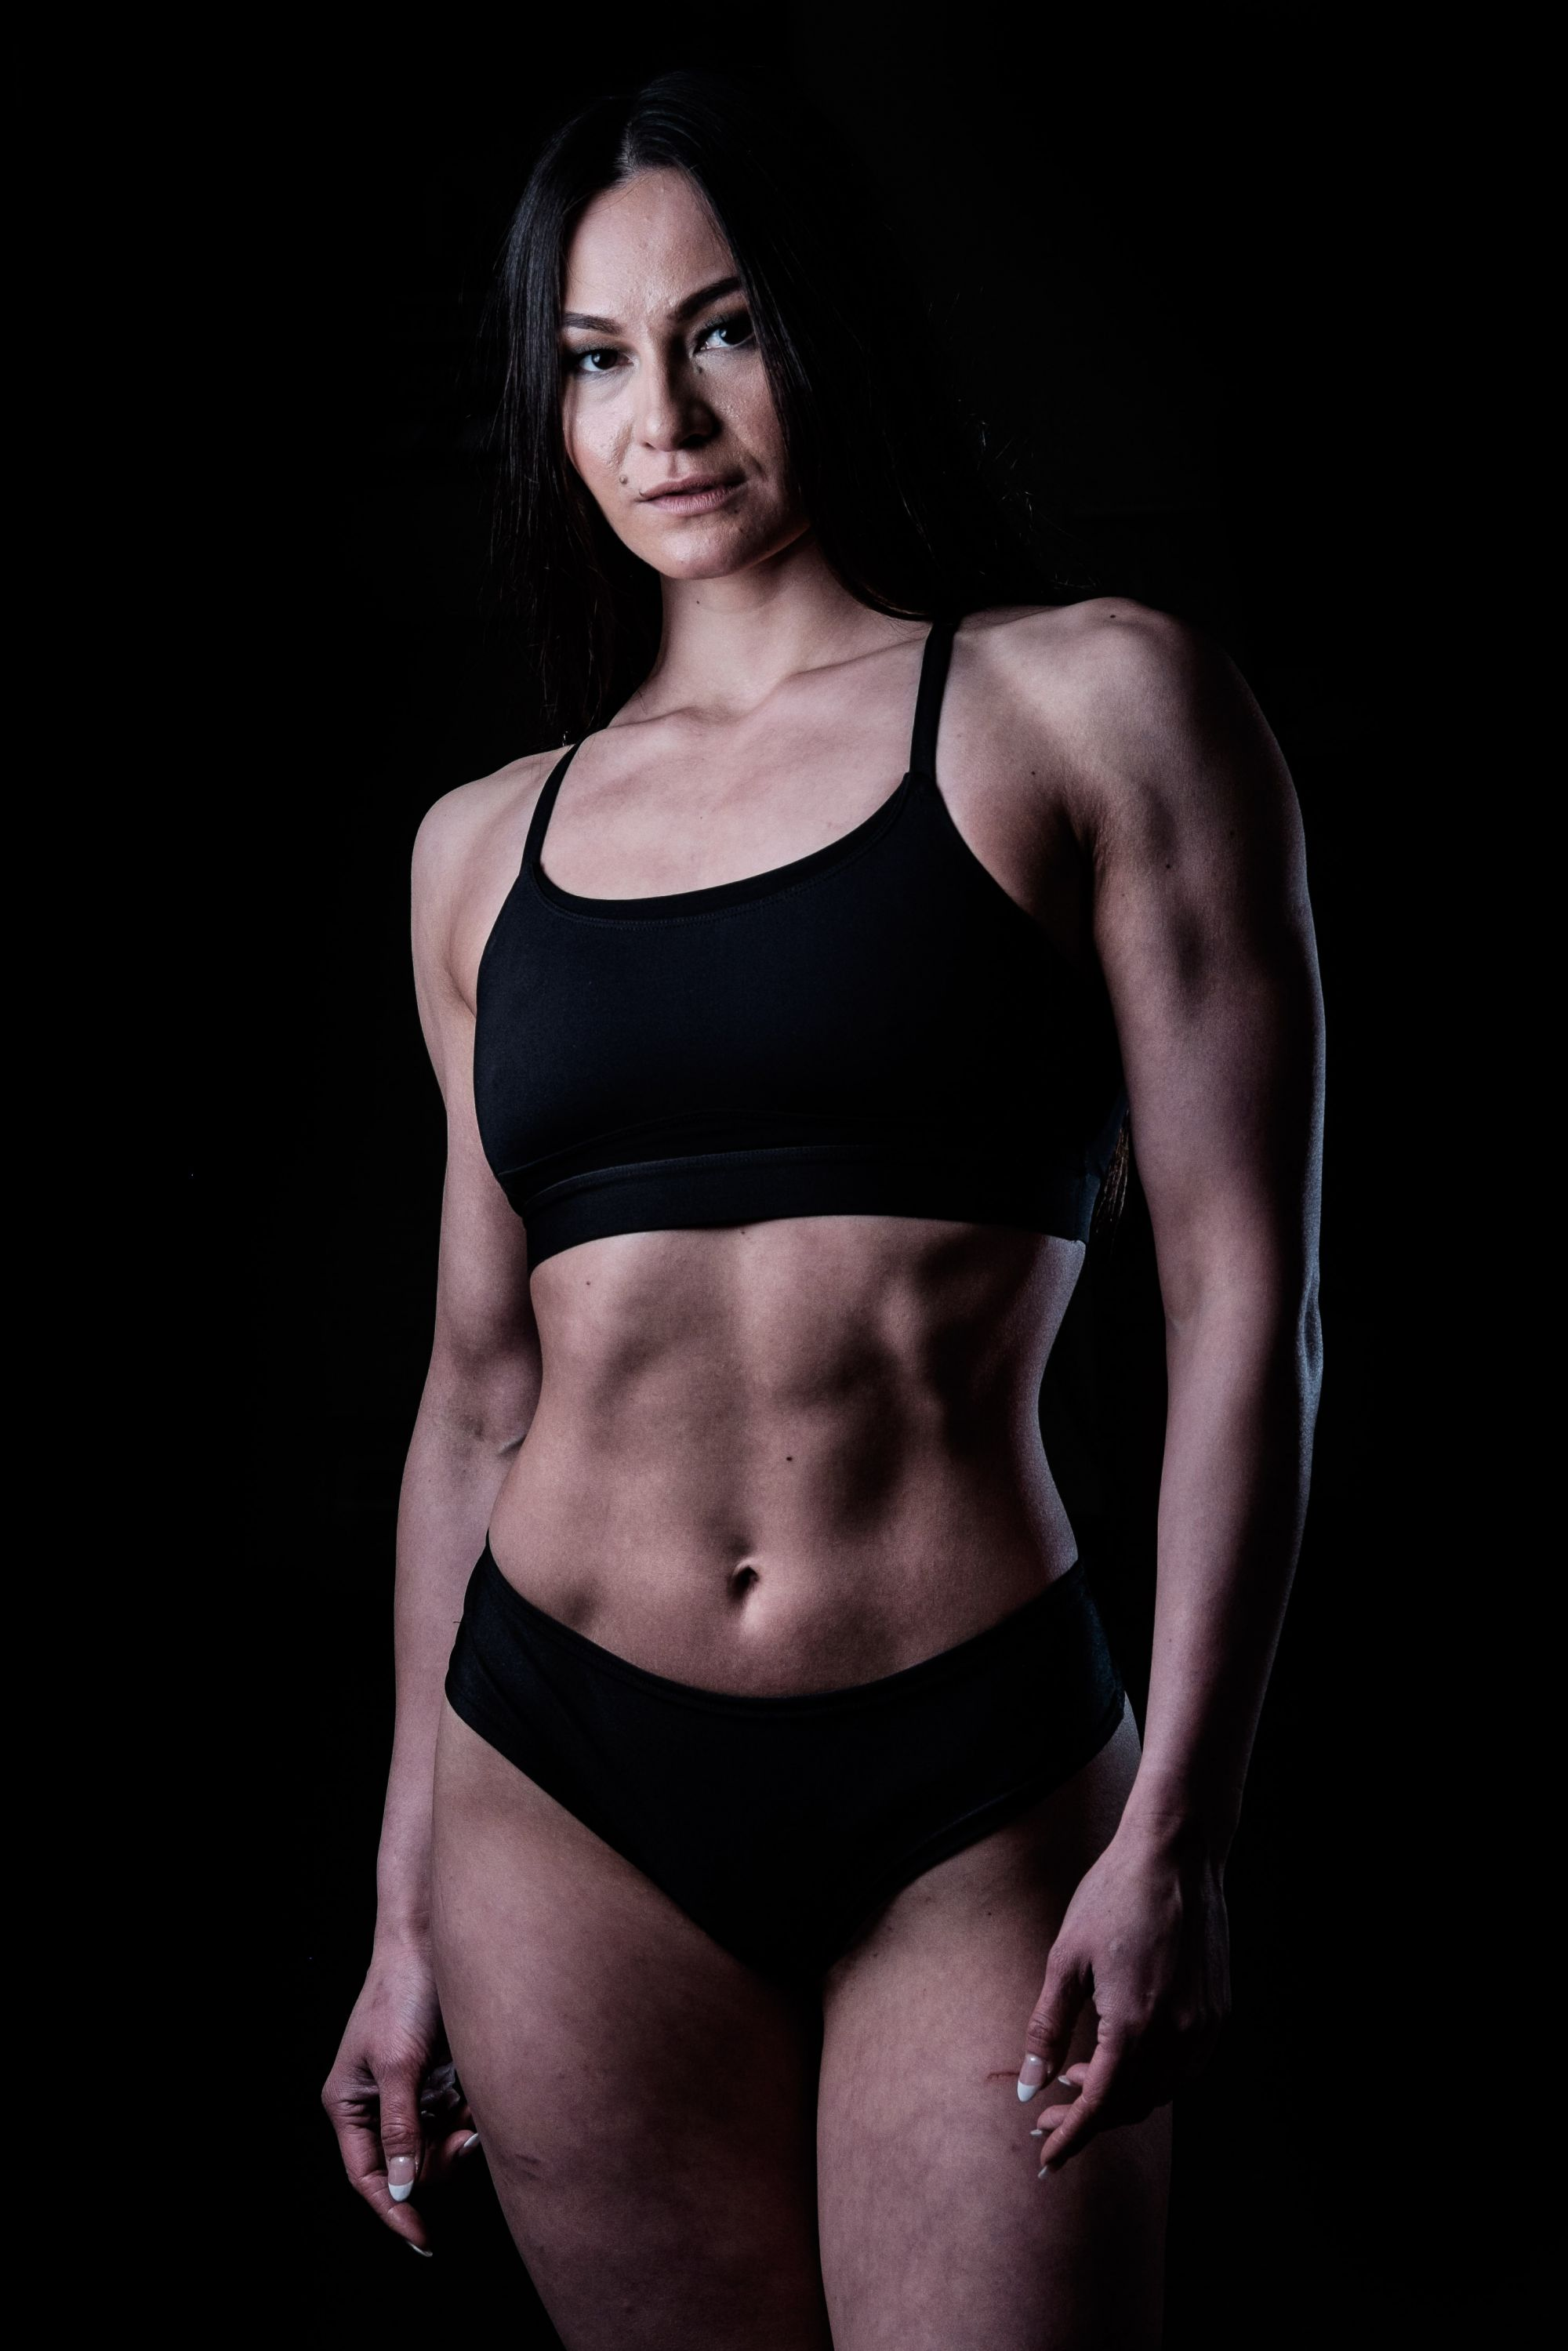 Image of Portrait, Commercial, Fitness Photography